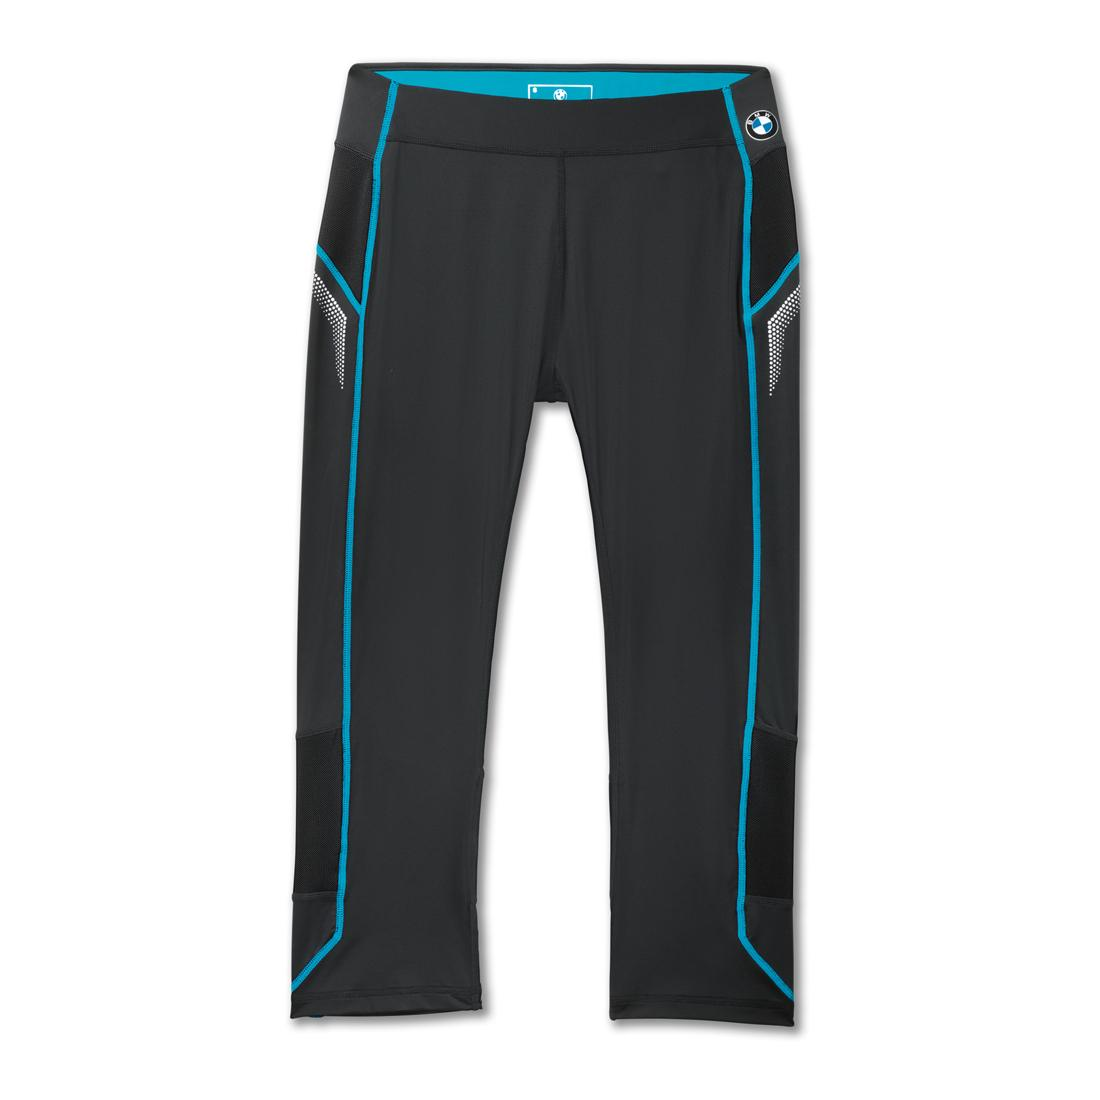 BMW Athletics Ladies' Short Sport Tights